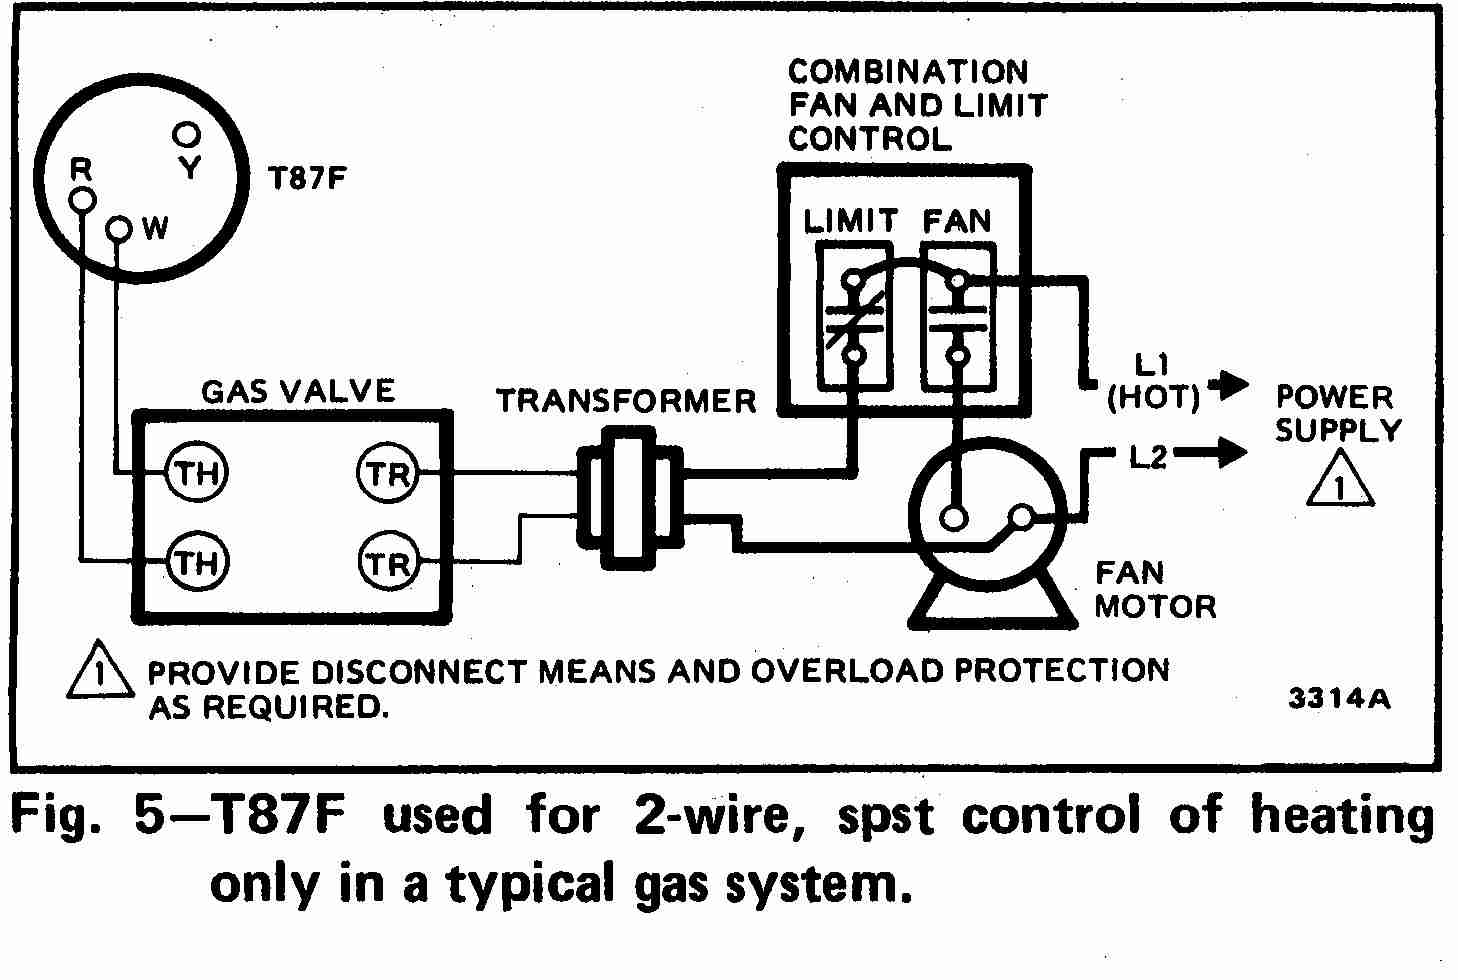 TT_T87F_0002_2Wg_DJF room thermostat wiring diagrams for hvac systems furnace wiring diagrams at bakdesigns.co